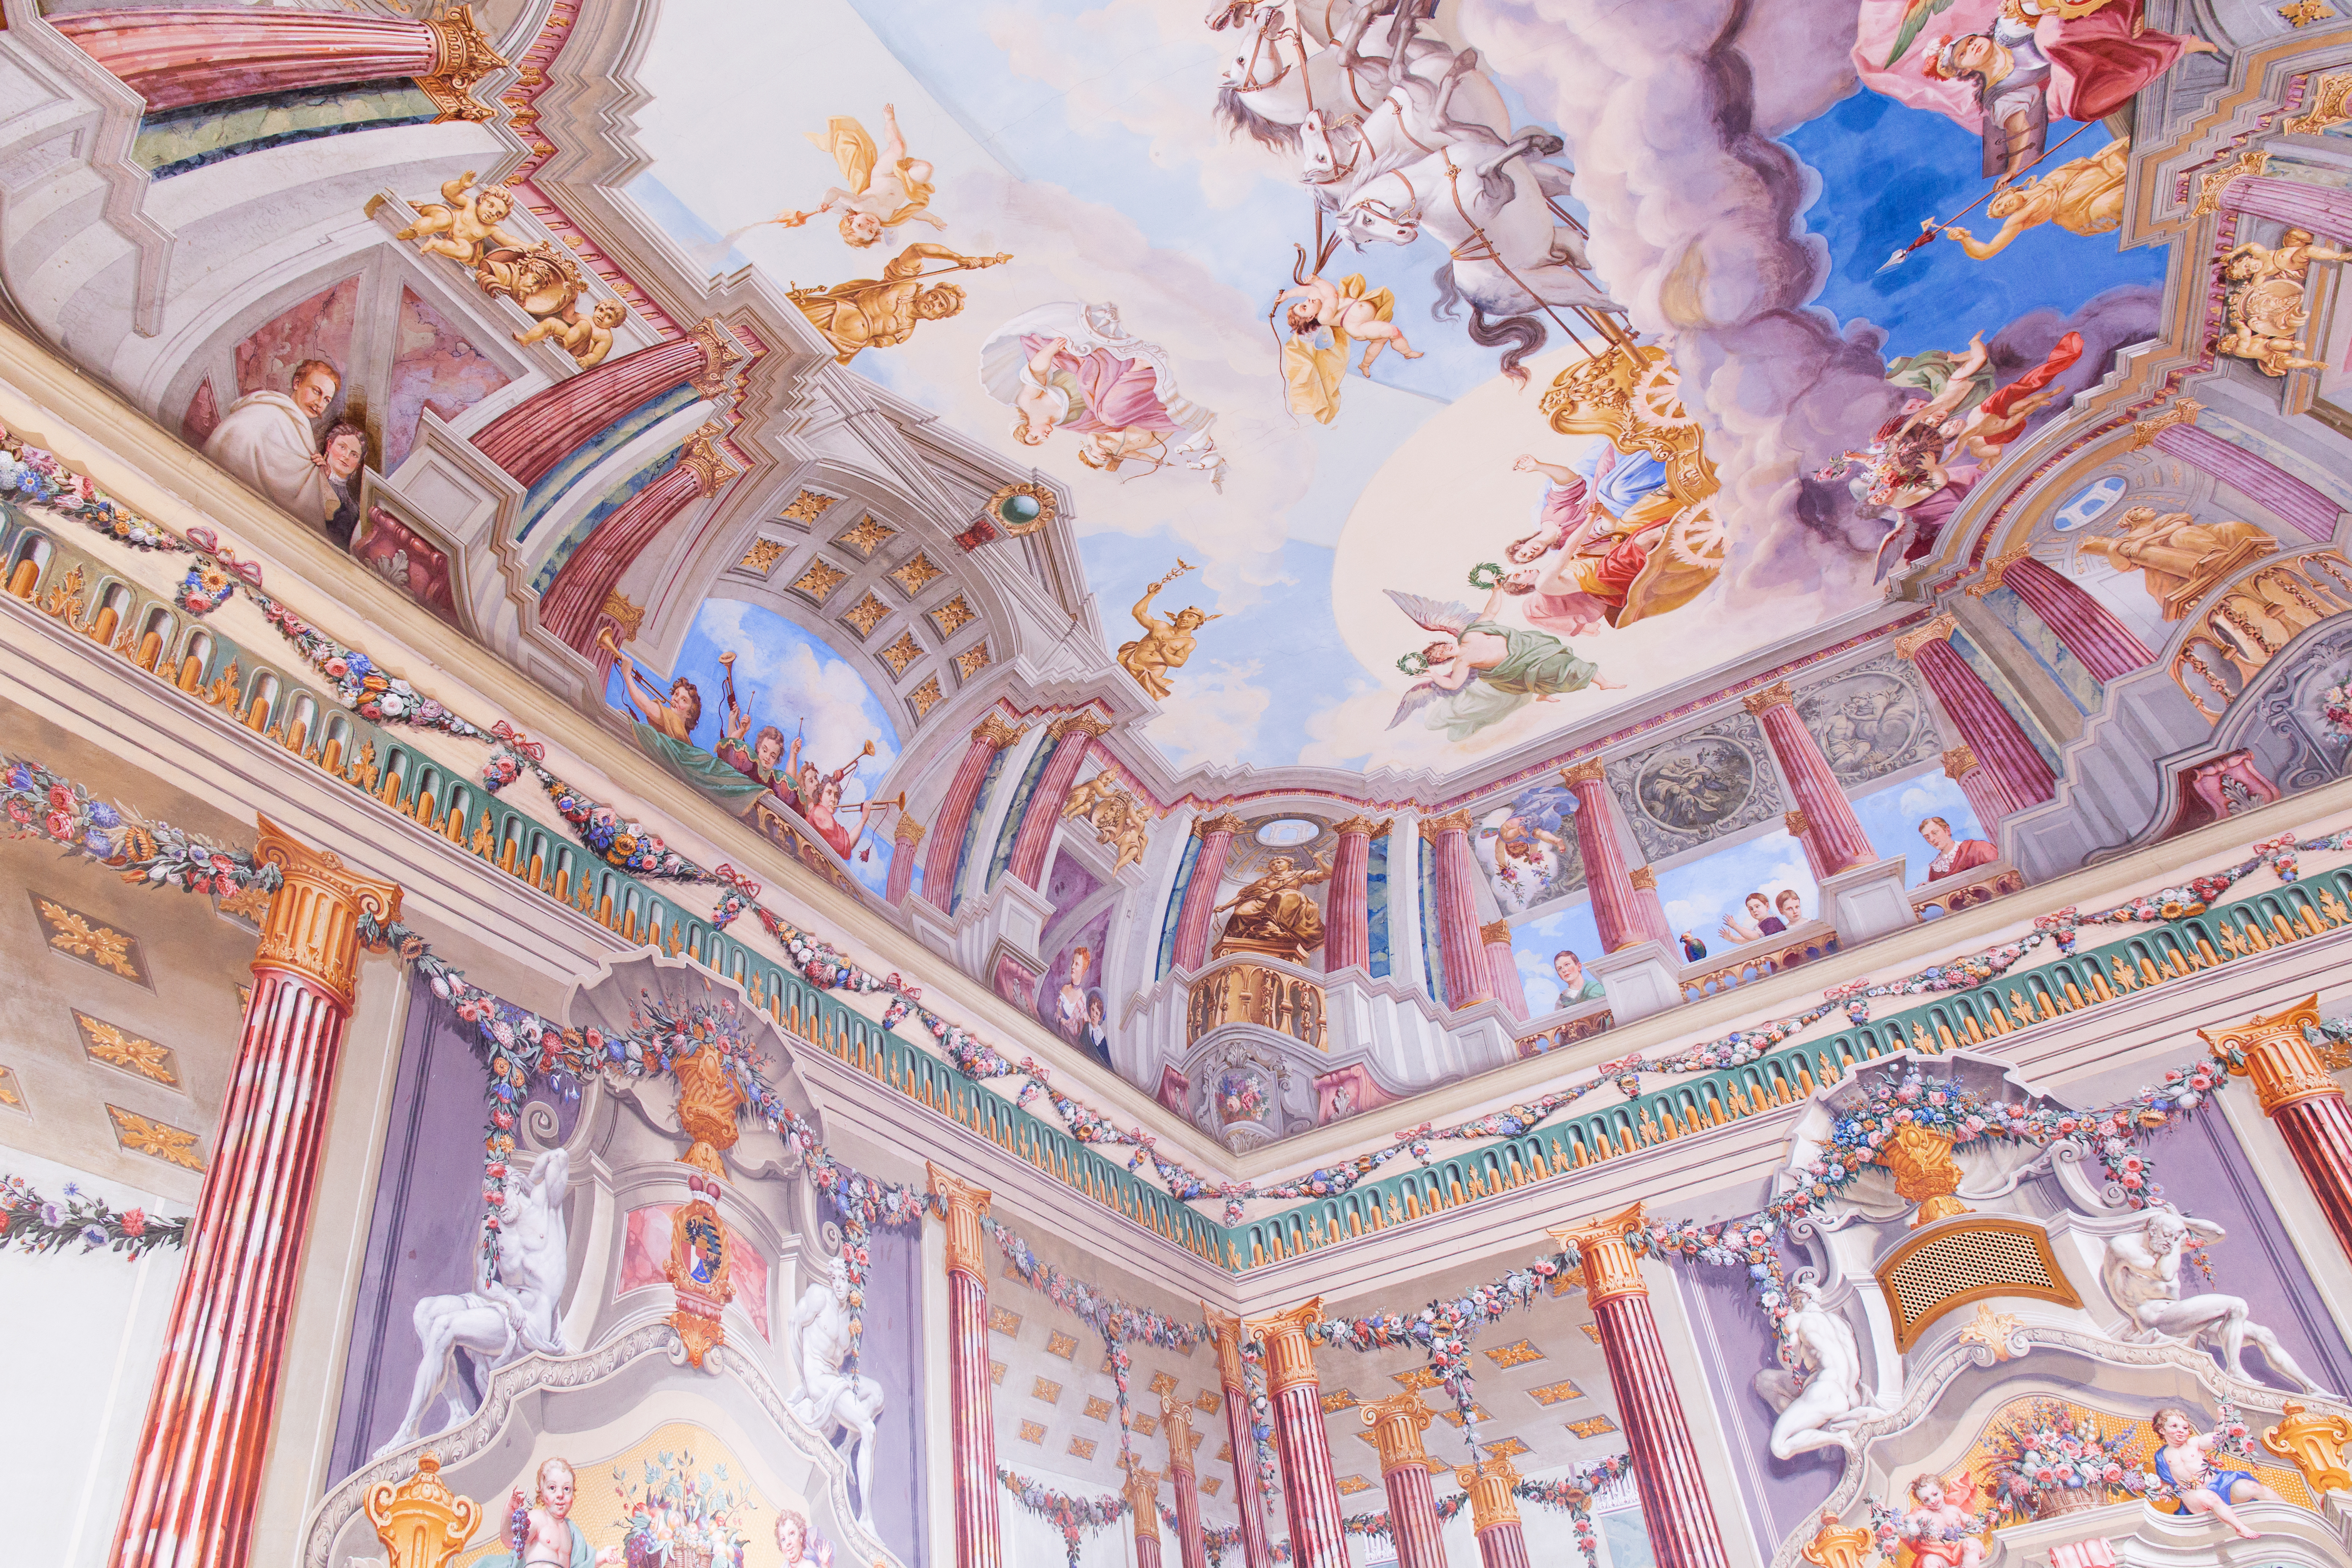 Photo of an elaborately decorated ceiling